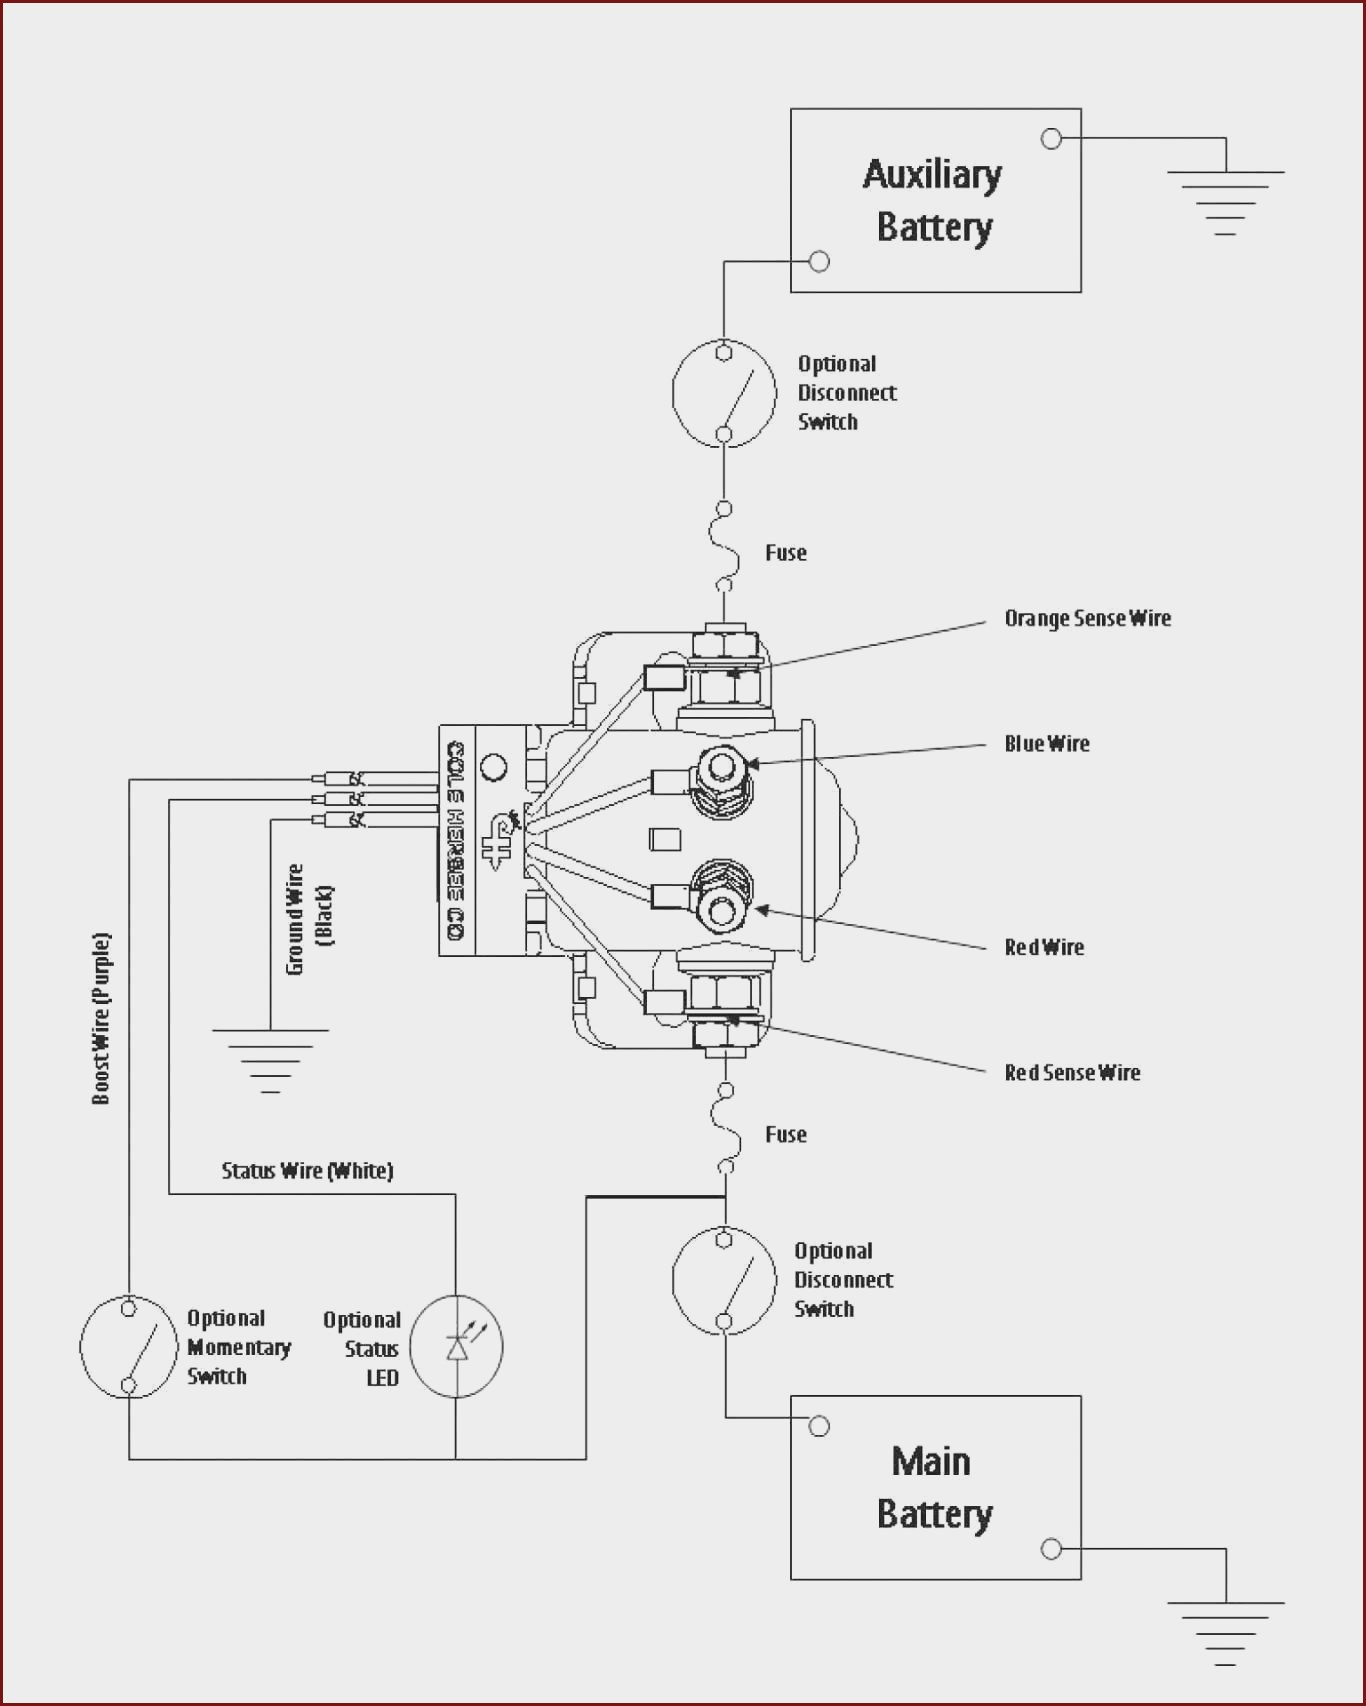 Electric Car Battery Diagram Razor Scooter Battery Wiring Diagram at Manuals Library Of Electric Car Battery Diagram